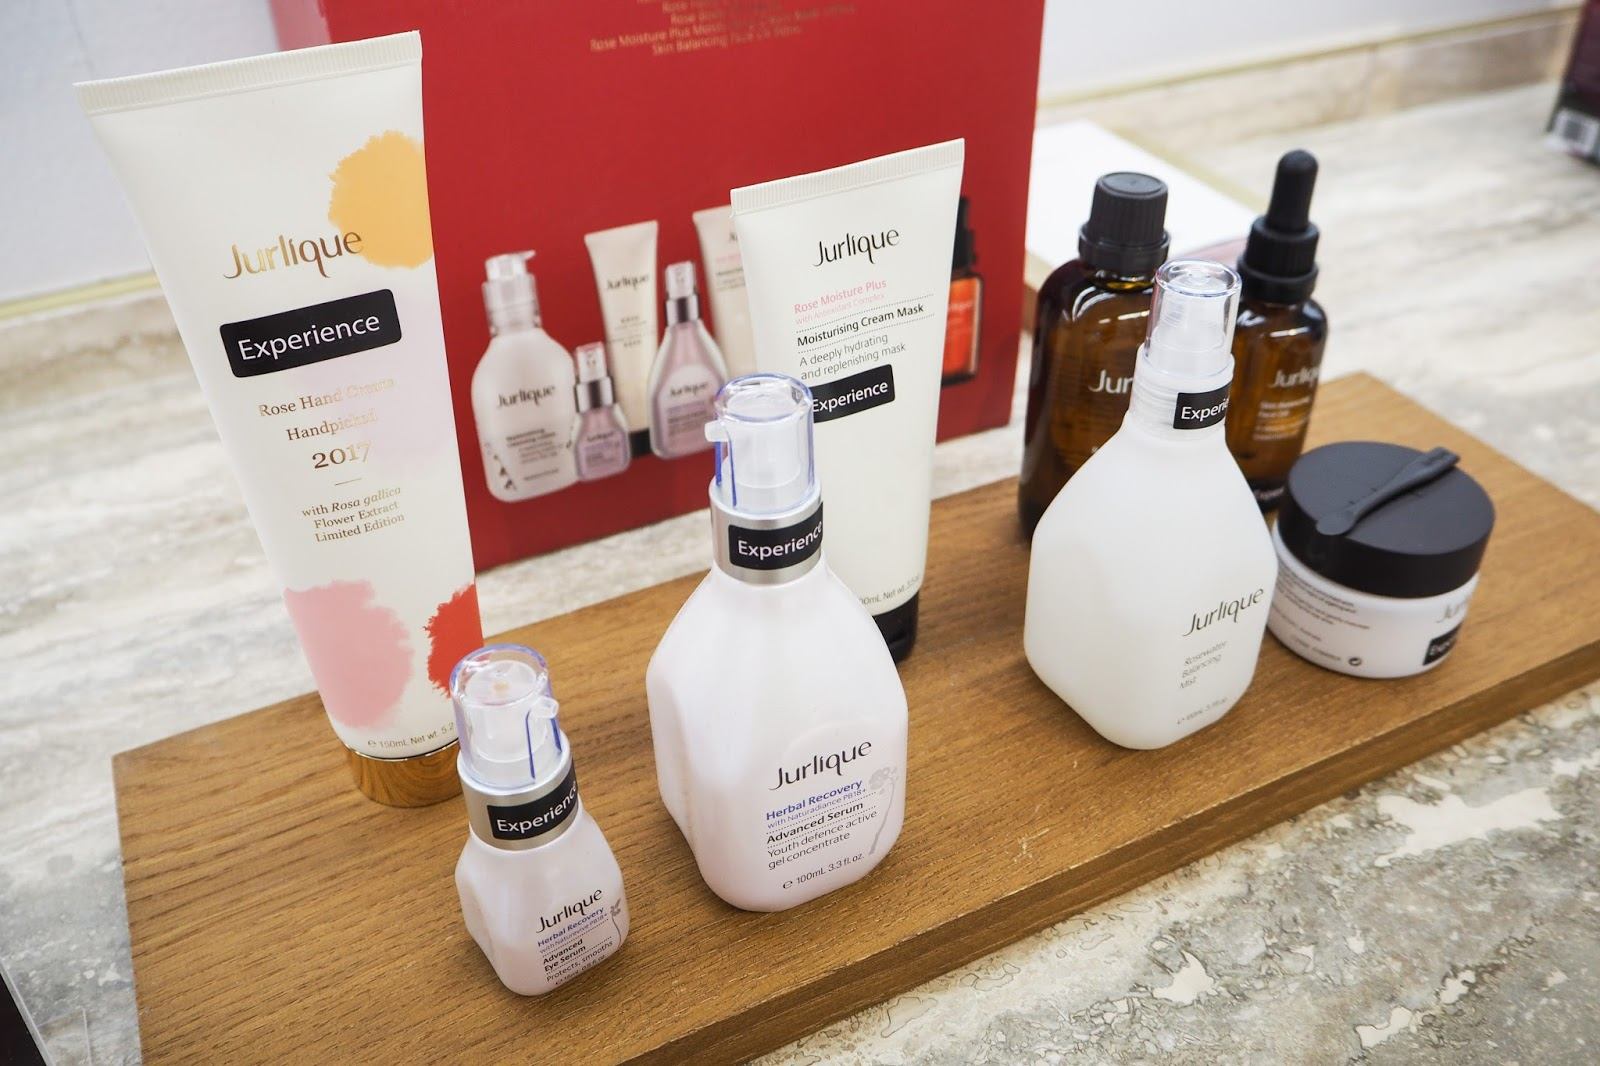 A selection of Jurlique skincare products at the Chester counter